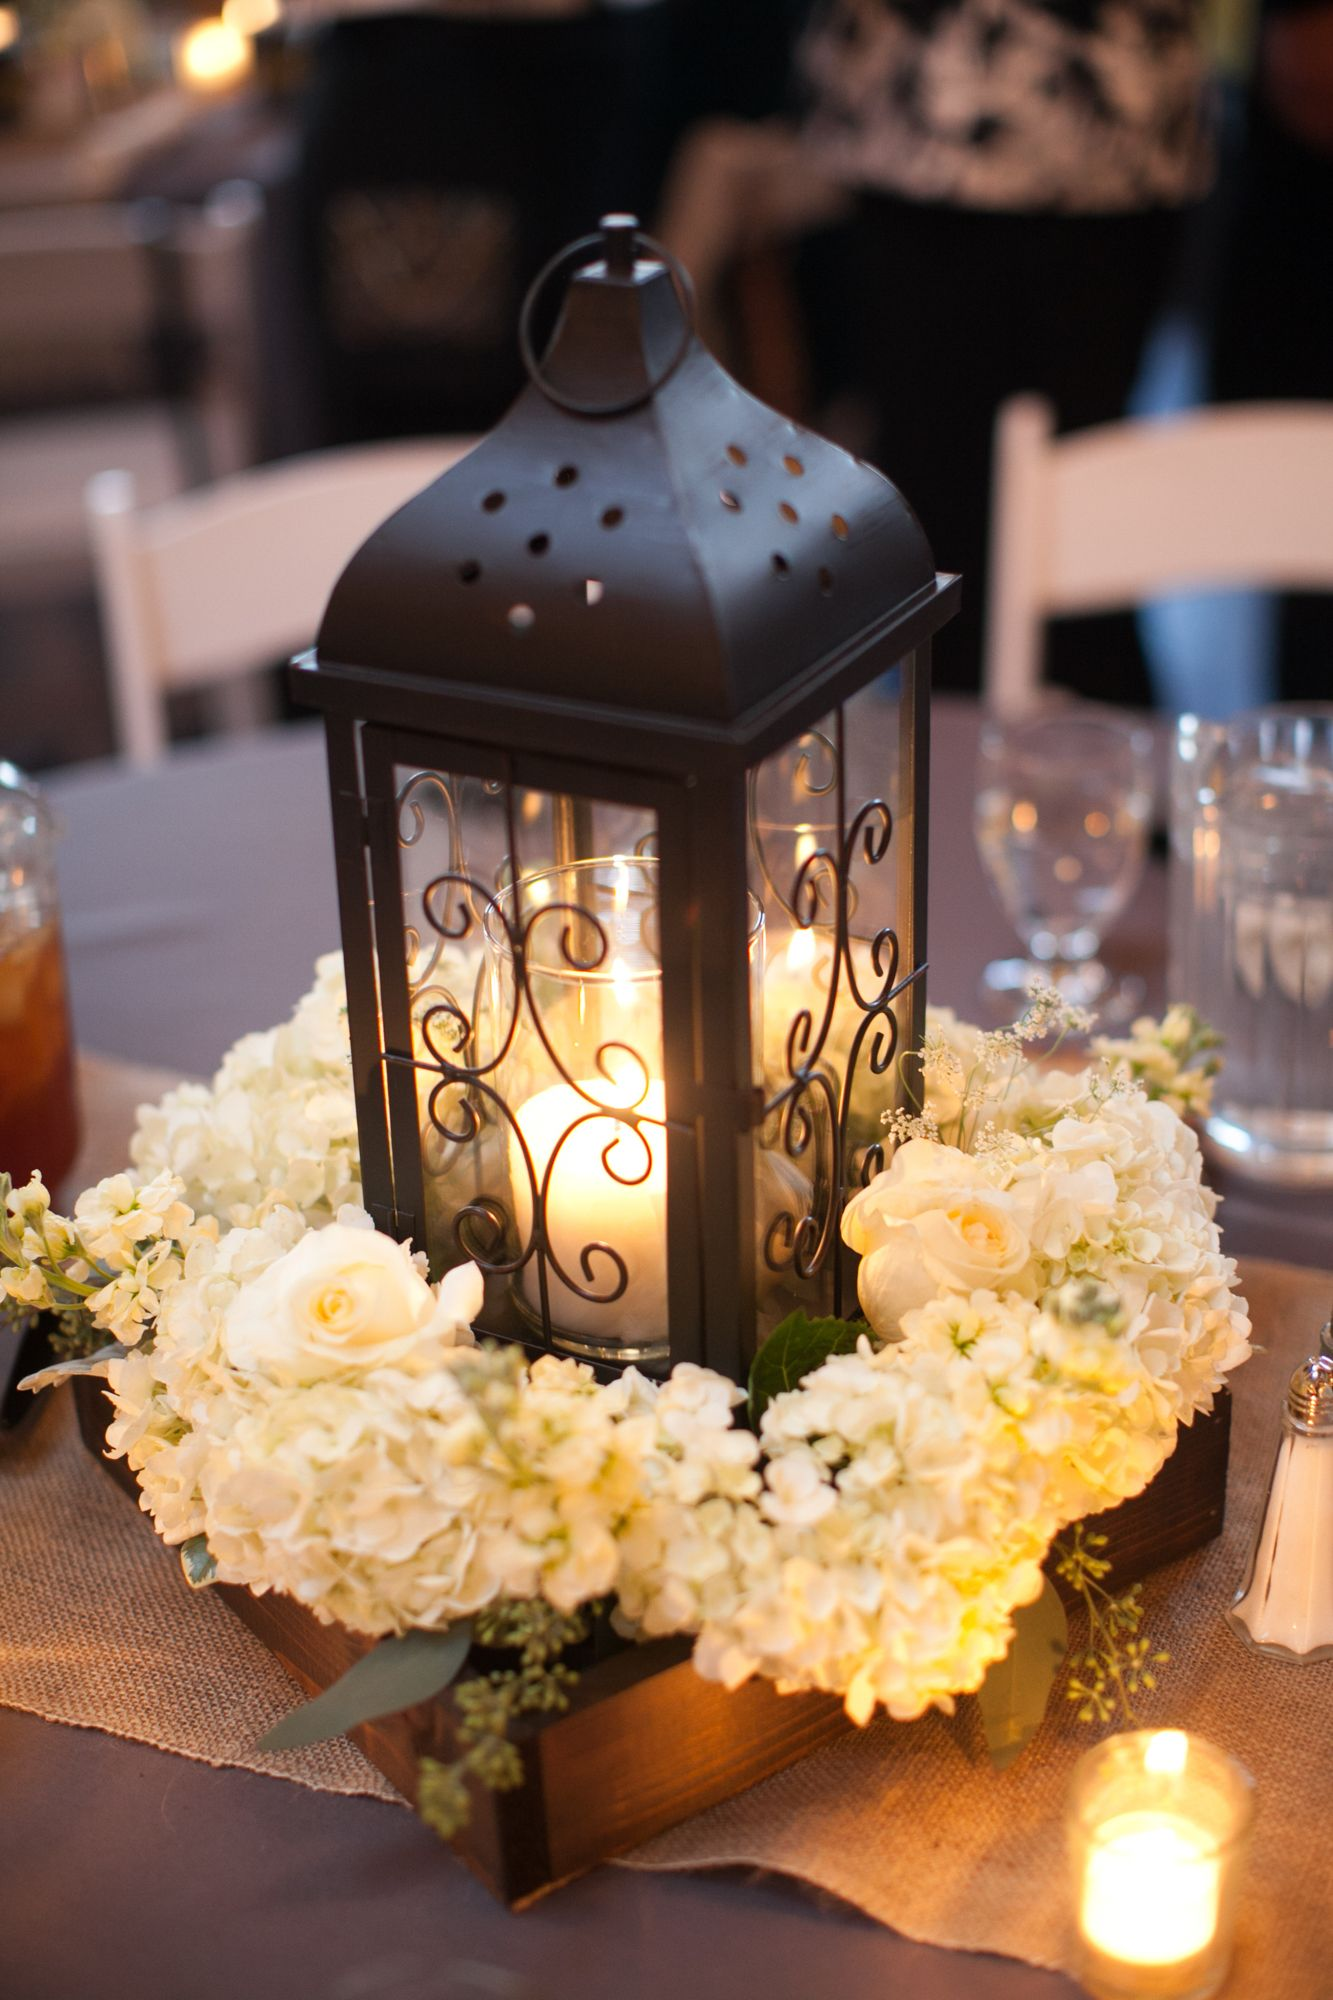 black lantern and white hydrangea centerpiece wedding. Black Bedroom Furniture Sets. Home Design Ideas